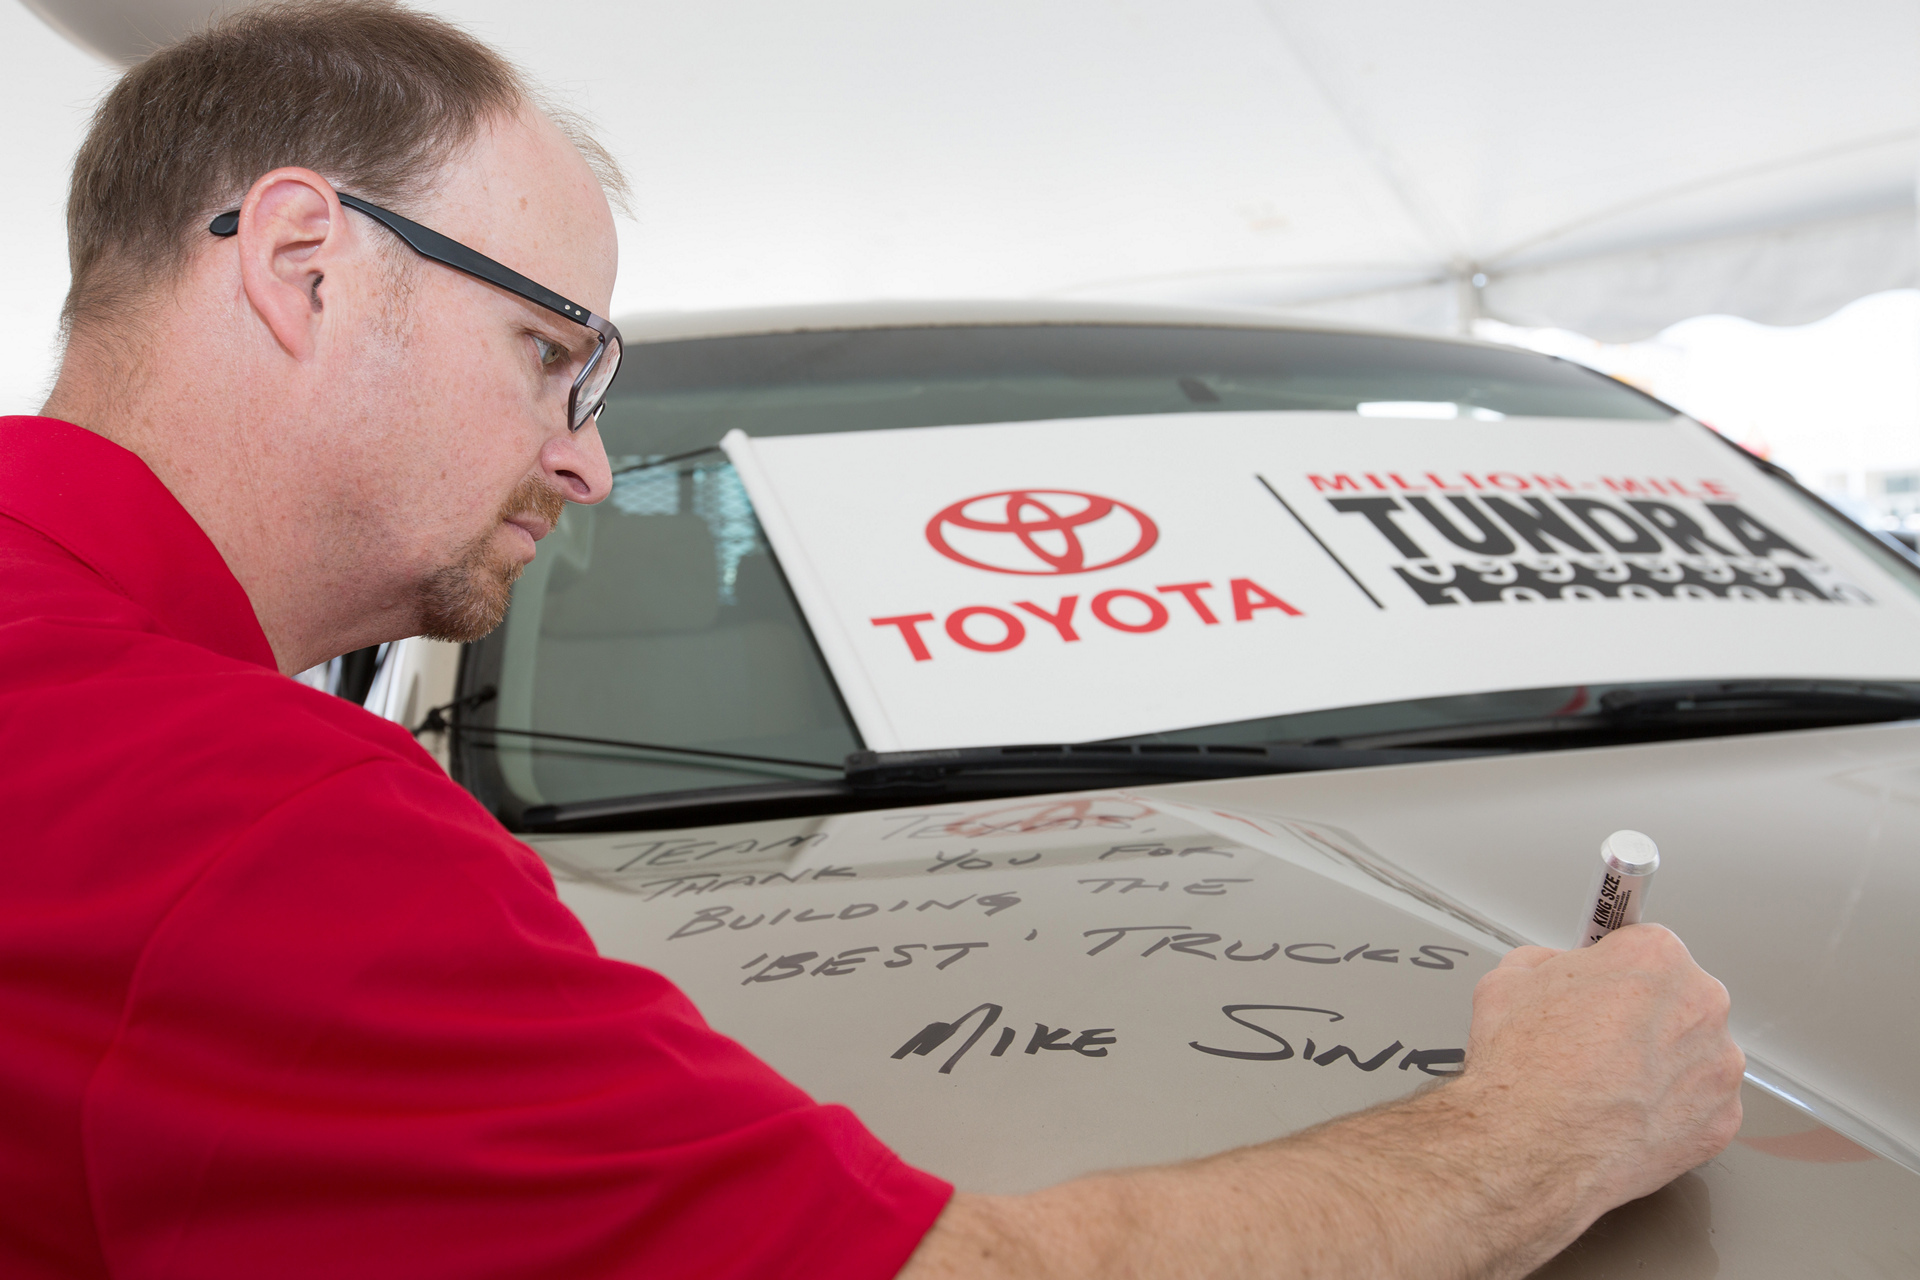 Toyota Dealership Dallas >> What Is a Million-Mile Toyota Tundra Worth? - Carrrs Auto Portal